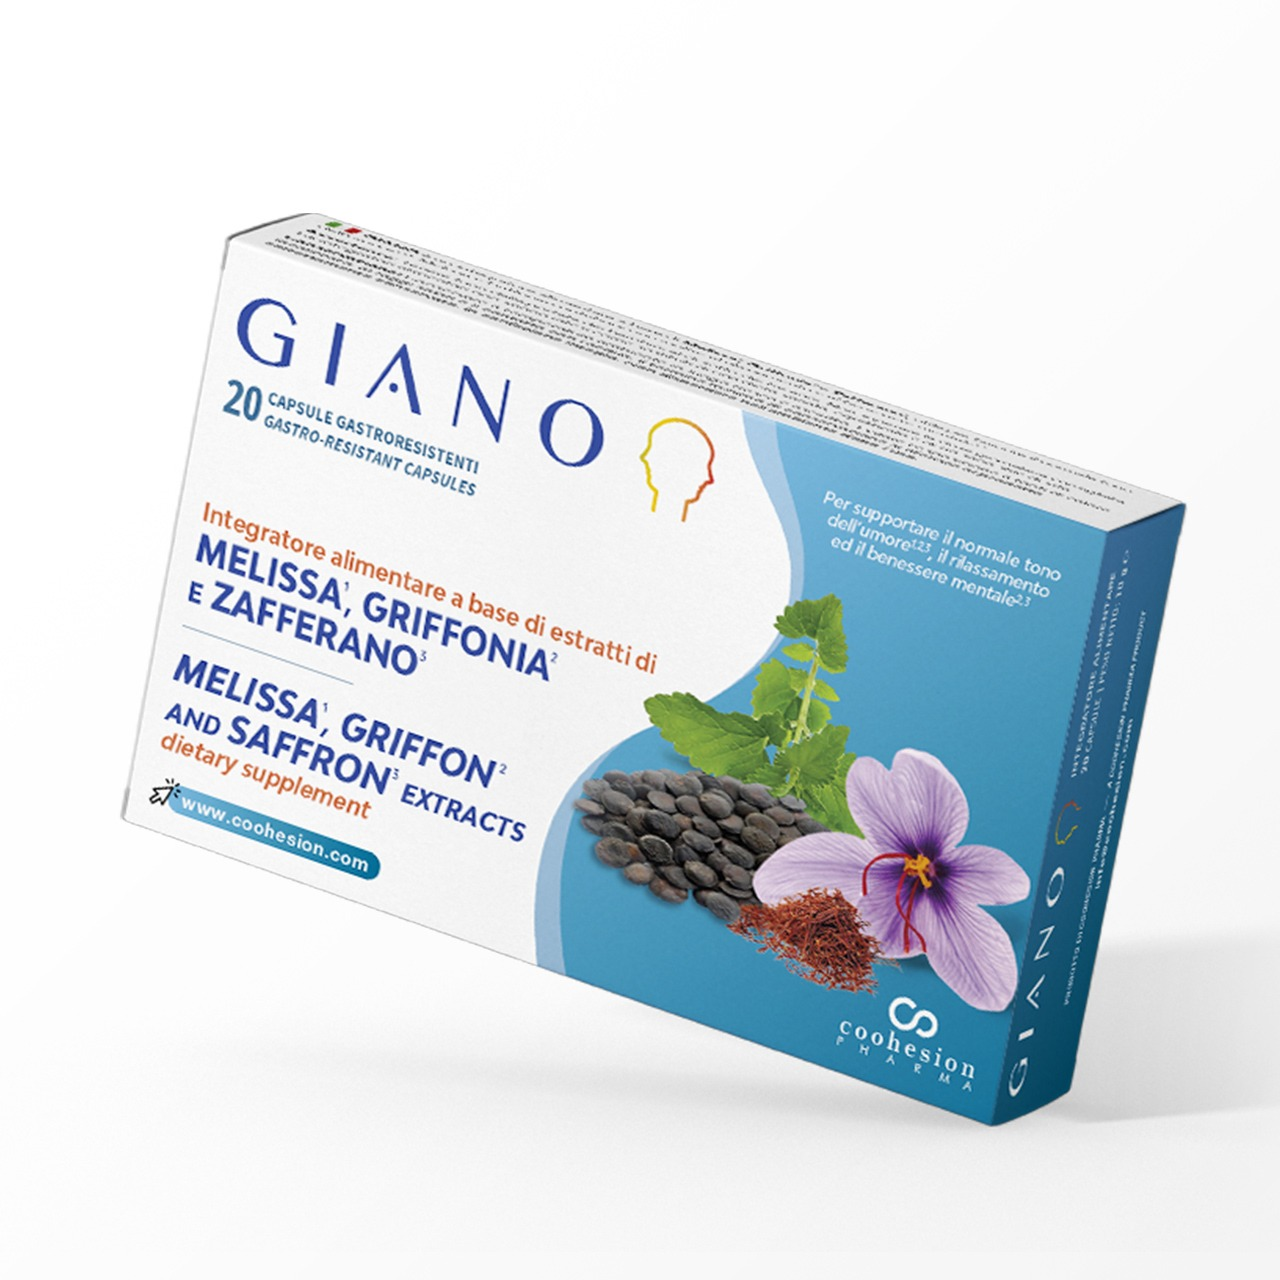 Giano - Natural antidepressant and anxiolytic